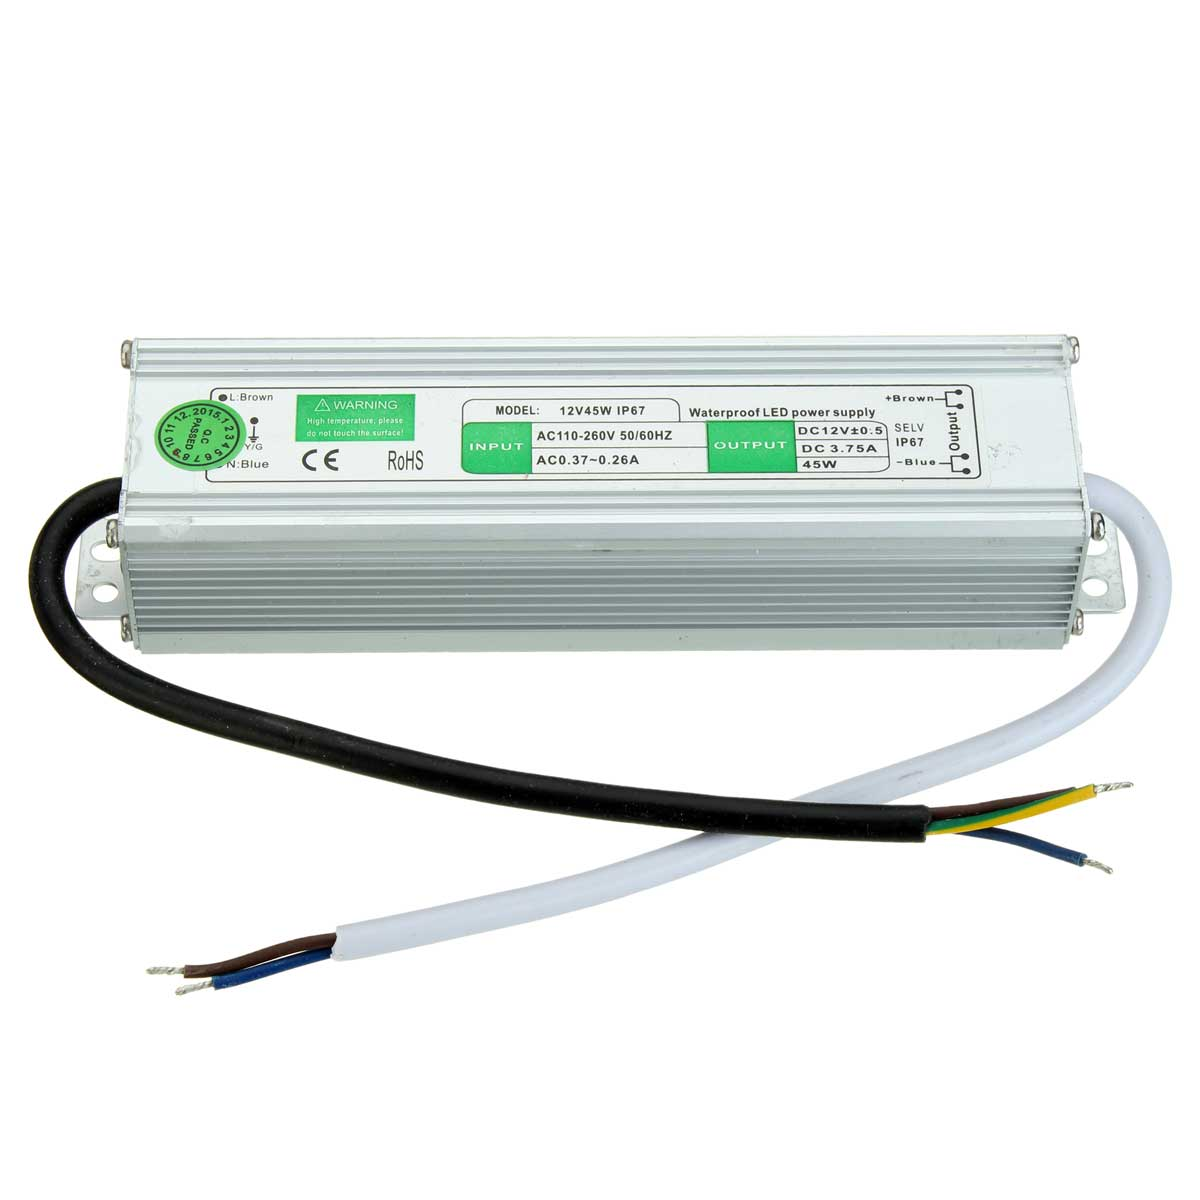 DC 12V 3.7A 45W Waterproof IP67 Electronic LED Security Camera Power Supply 50/60Hz